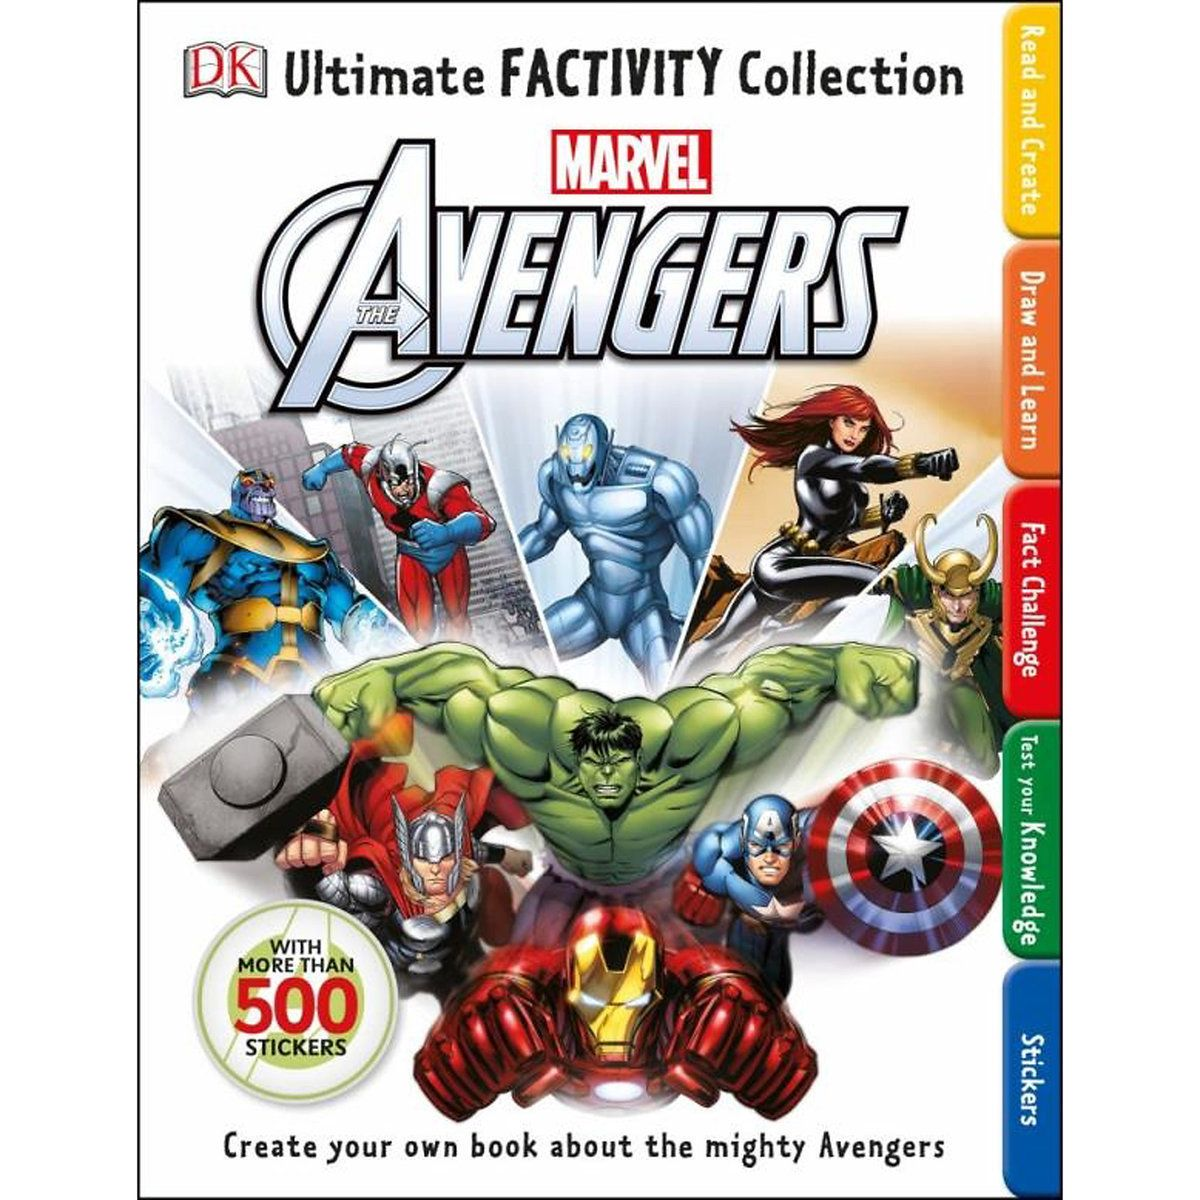 The Avengers Ultimate Factivity Collection With Images